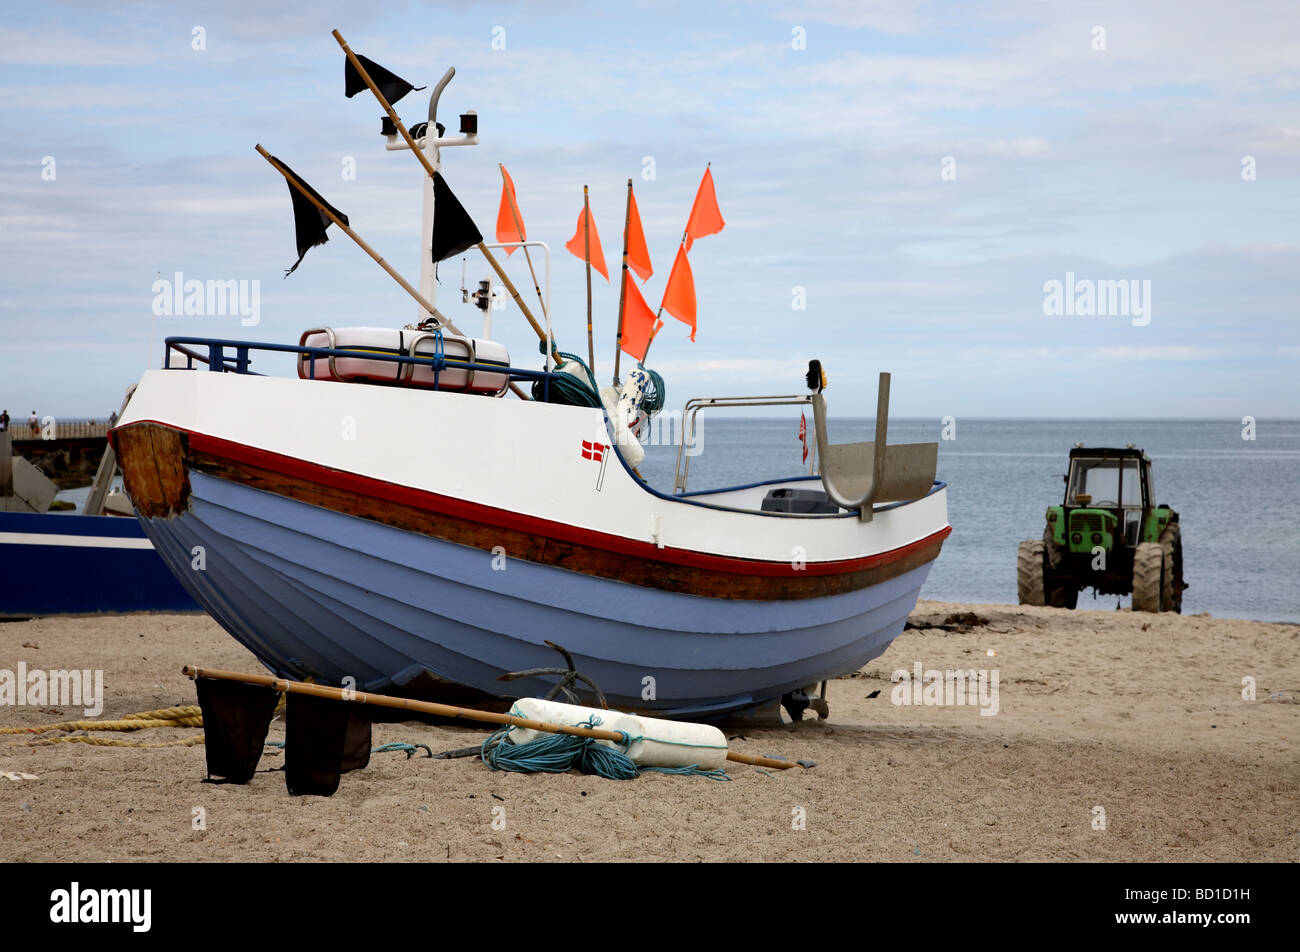 Fishing boats pulled up on the beach at Vorupør on the west coast of Jutland, Denmark. - Stock Image